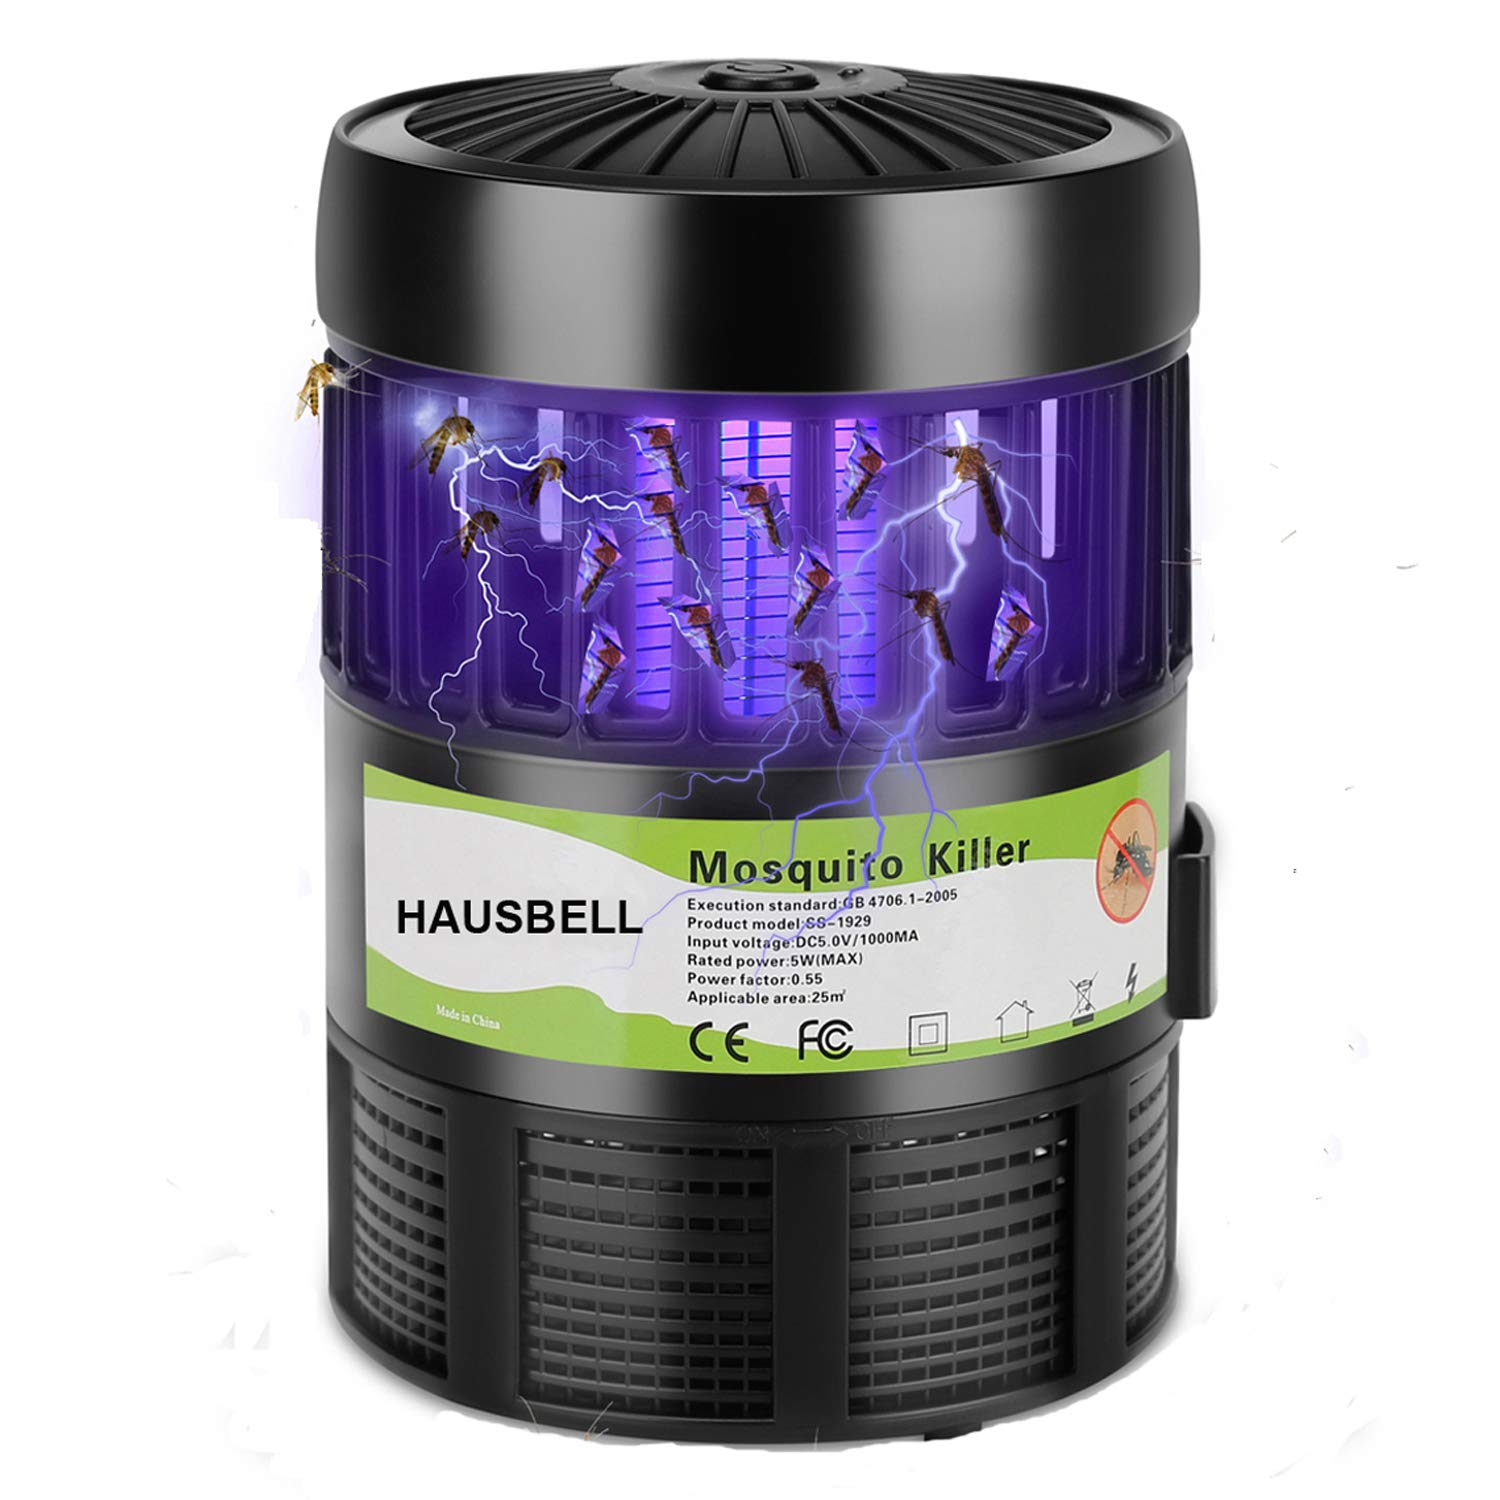 HAUSBELL Mosquito Killer Lamp, Electric Bug Zapper, Mosquito Fly Trap, Bug Control Inhaler, UV LED Insects Bee Zapper, USB Powered (Black-1Pack) 711m9SBe9TL